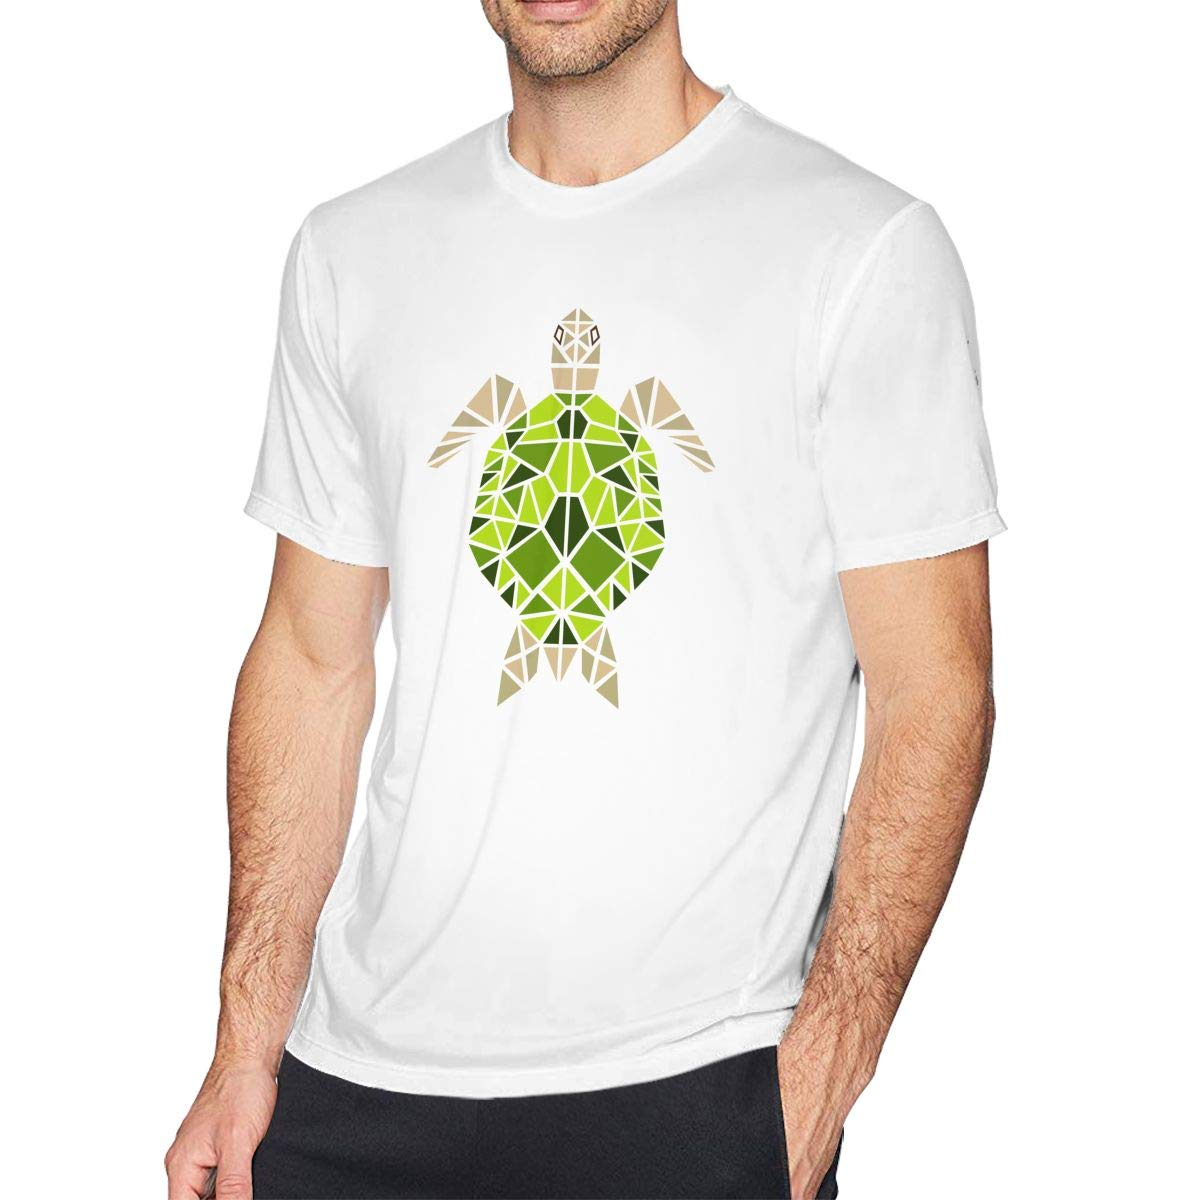 Casual Shirt for Men SUMT4men The Tortoise Mens Crew Neck Short Sleeve T-Shirt